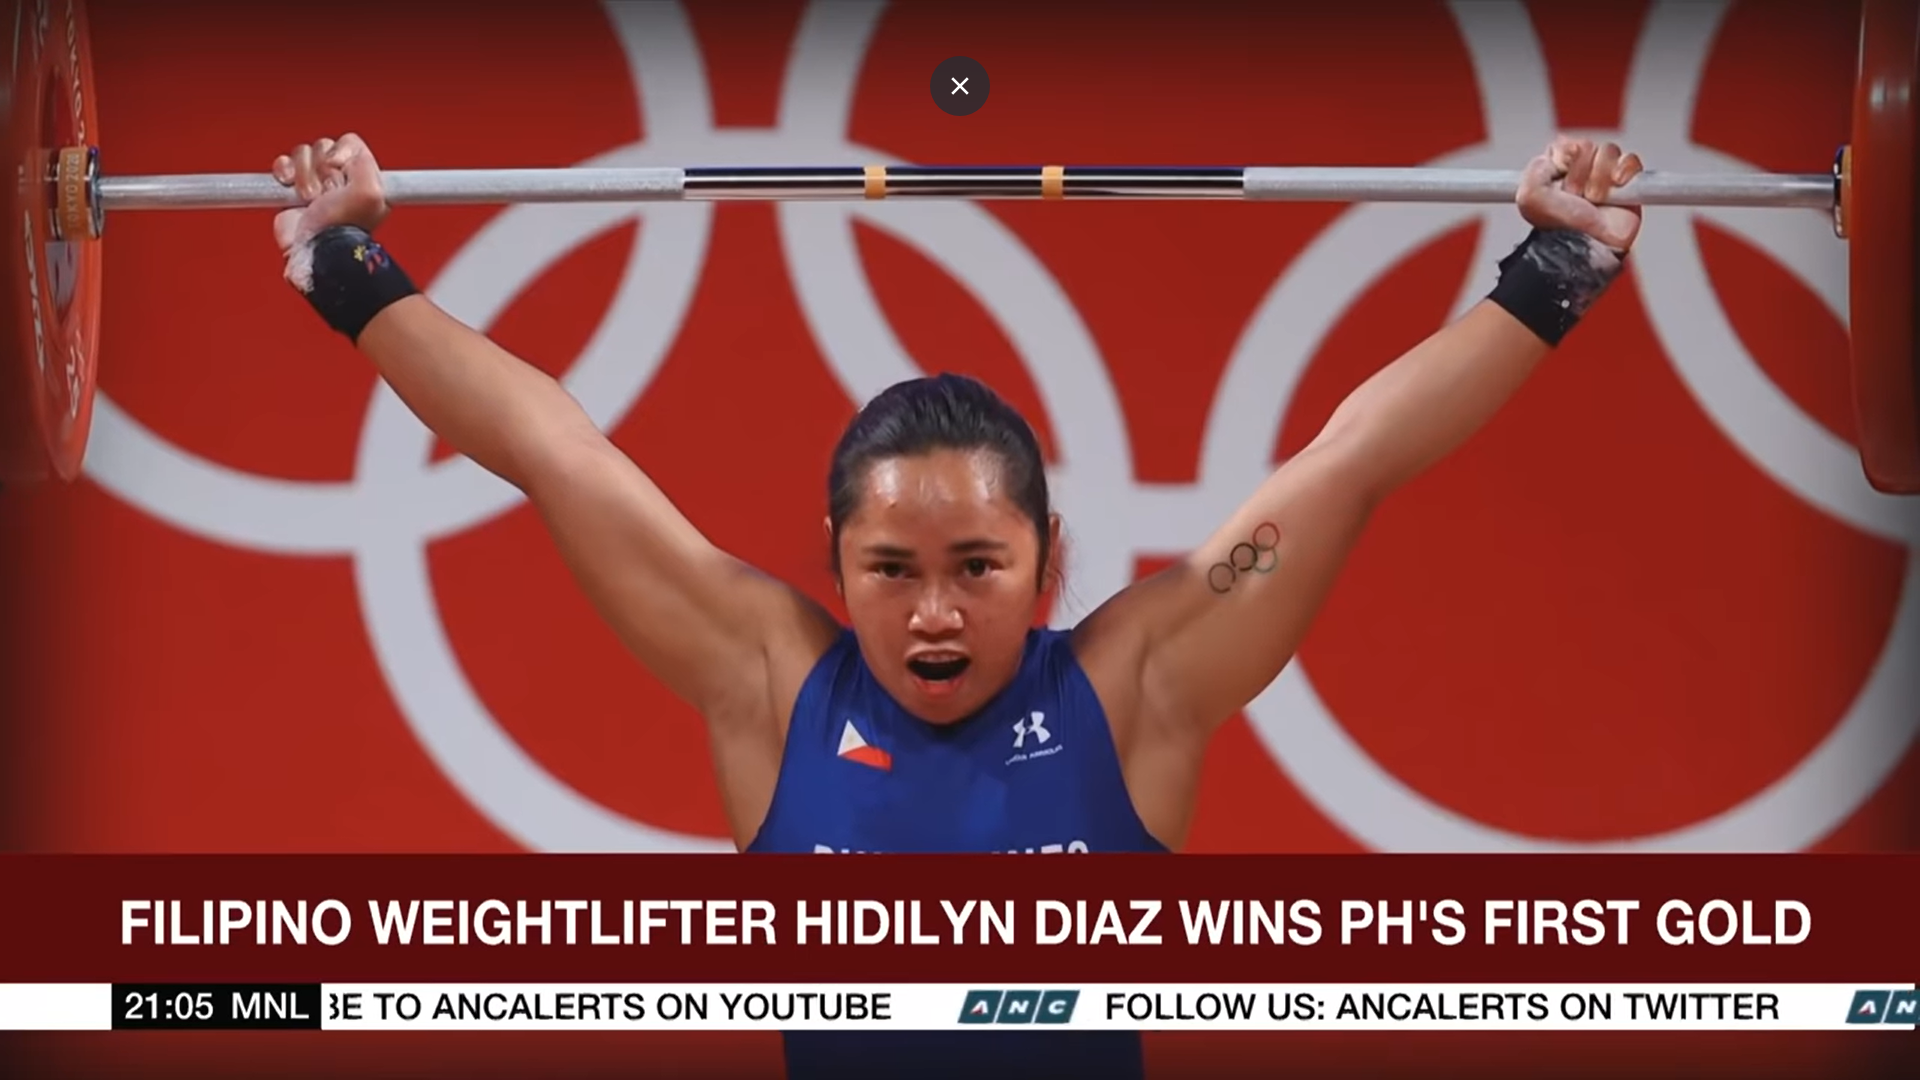 Filipino weightlifter Hidilyn Diaz makes history for winning the Philippines' first ever Olympic gold medal